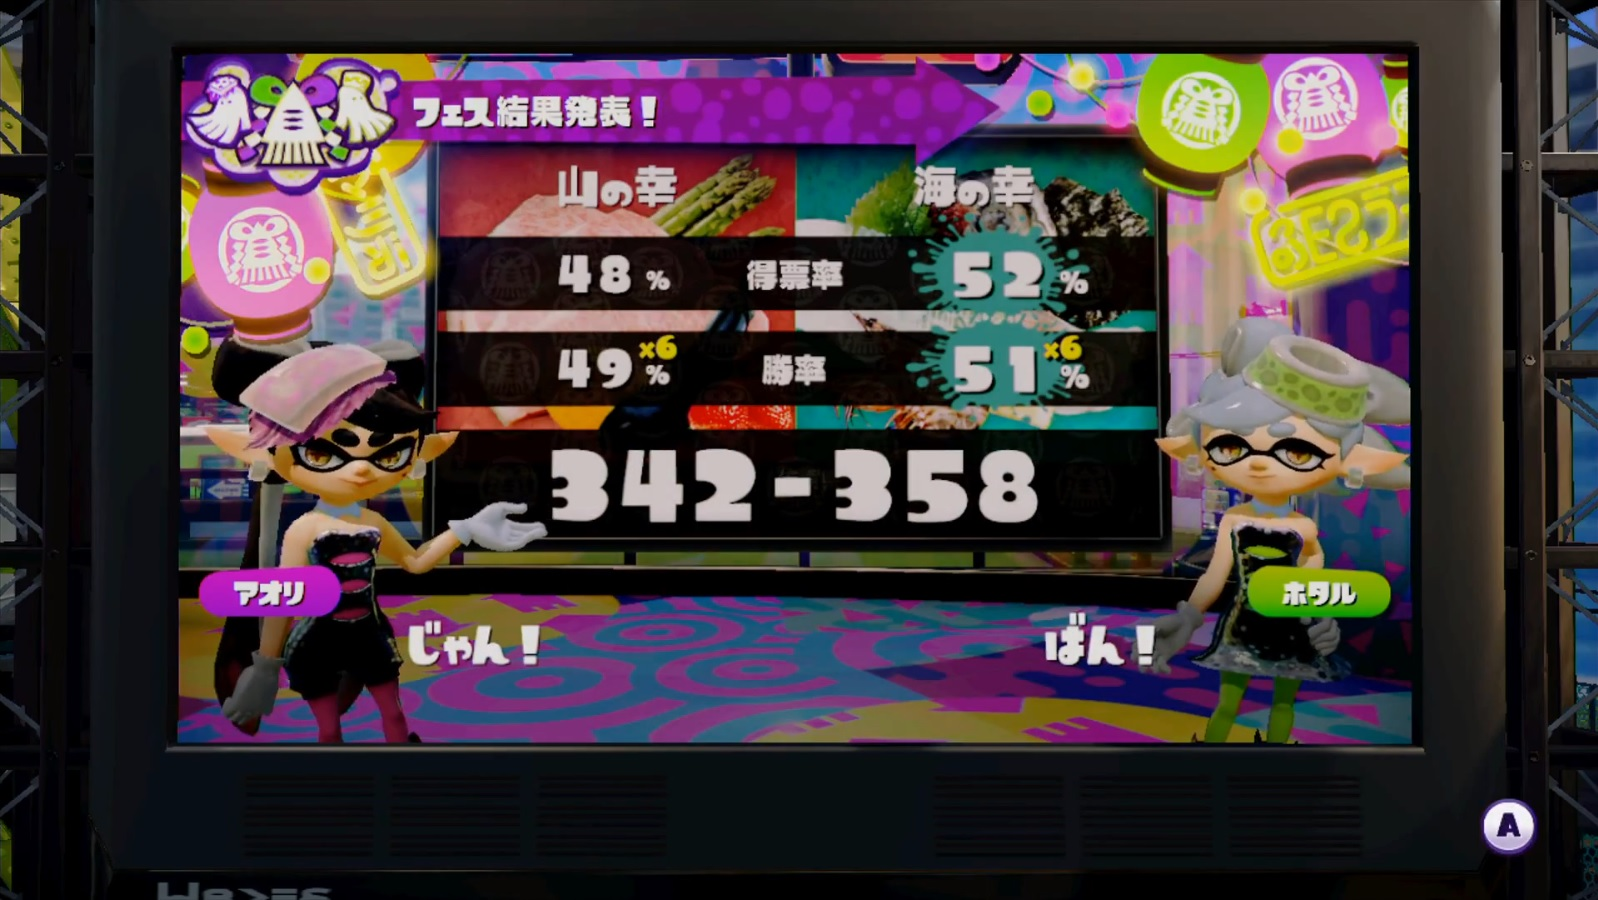 splatoon-splatfest-8-results-jp